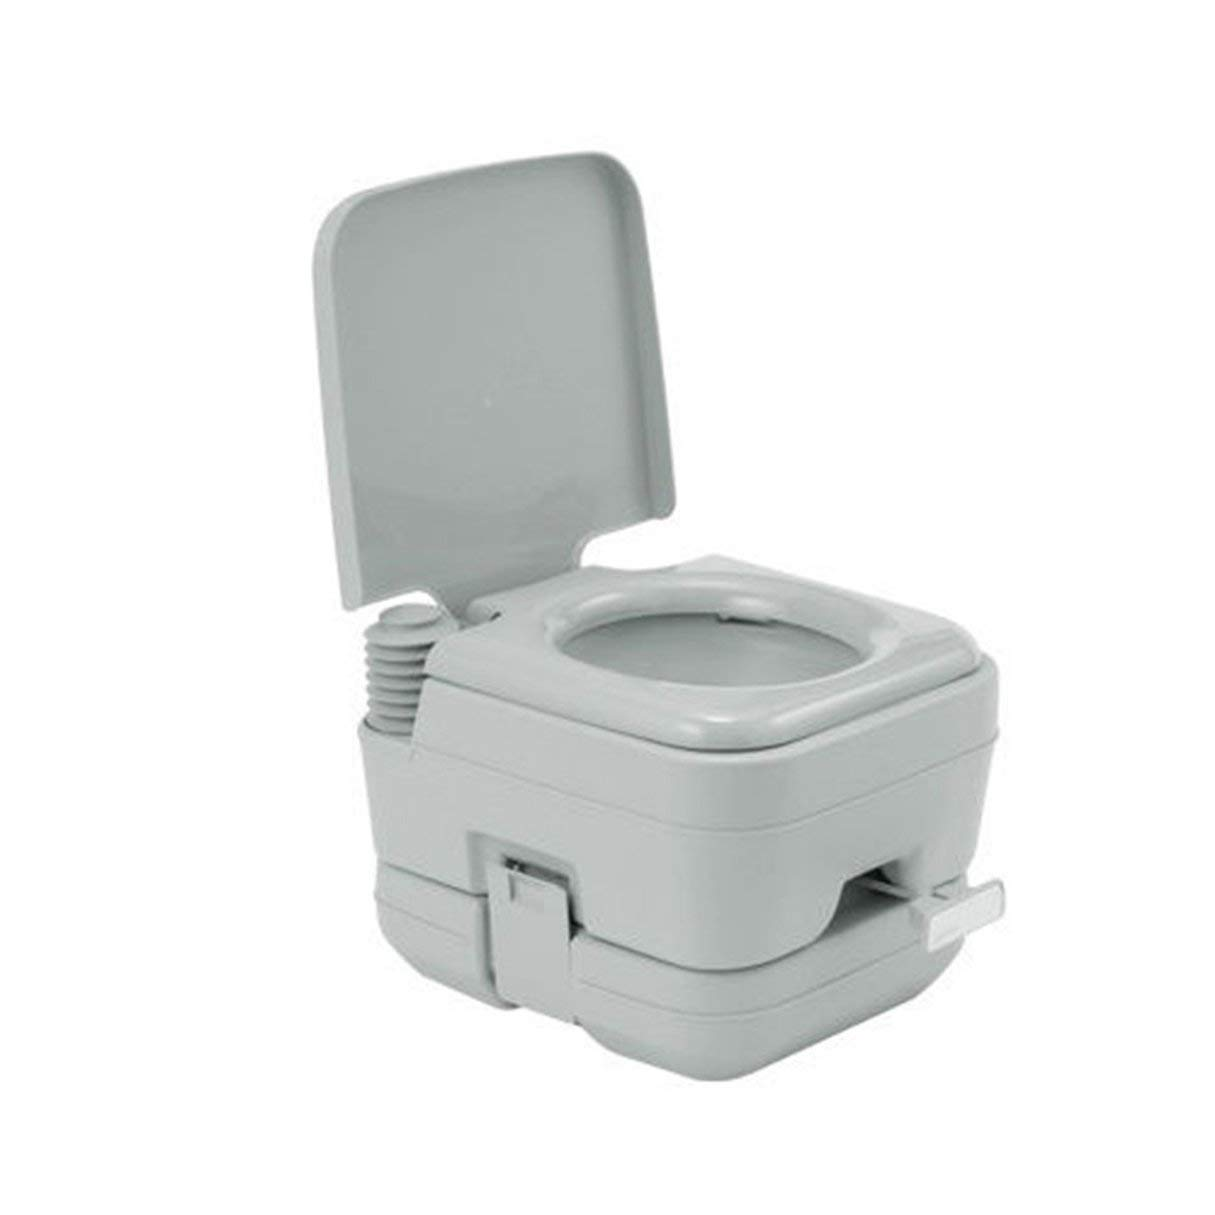 EmNarsissus 10L Square Flushing Töpfchen Tragbare Toilette Chemical Loo Camping Outdoor (Weiß)